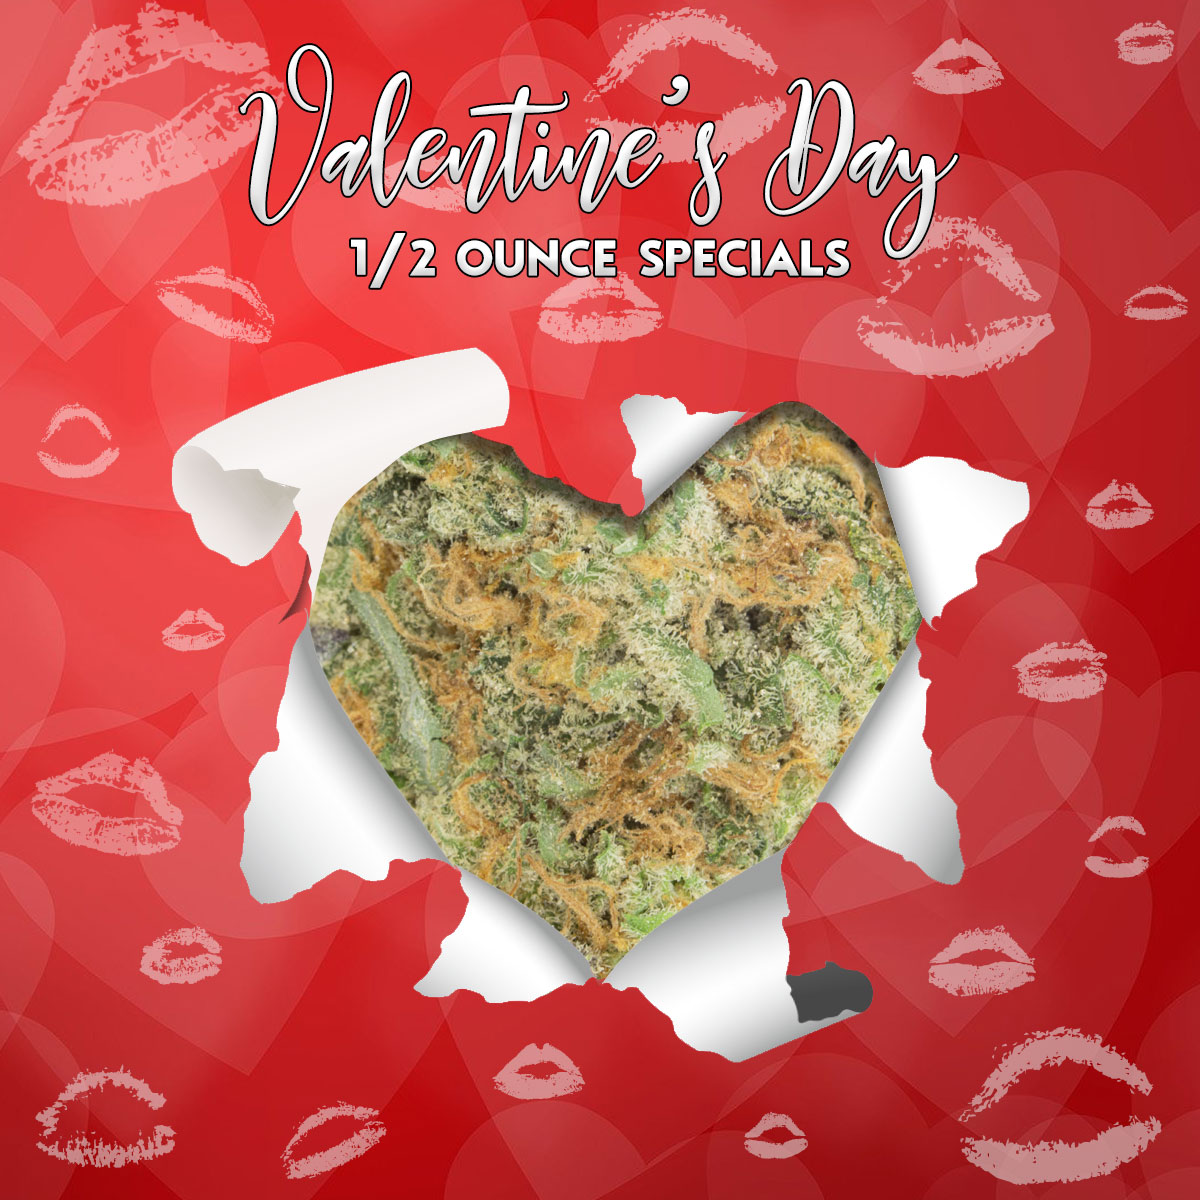 Valentines Day 1/2 Ounce Specials by Green Society - Image © 2018 Green Society. All Rights Reserved.